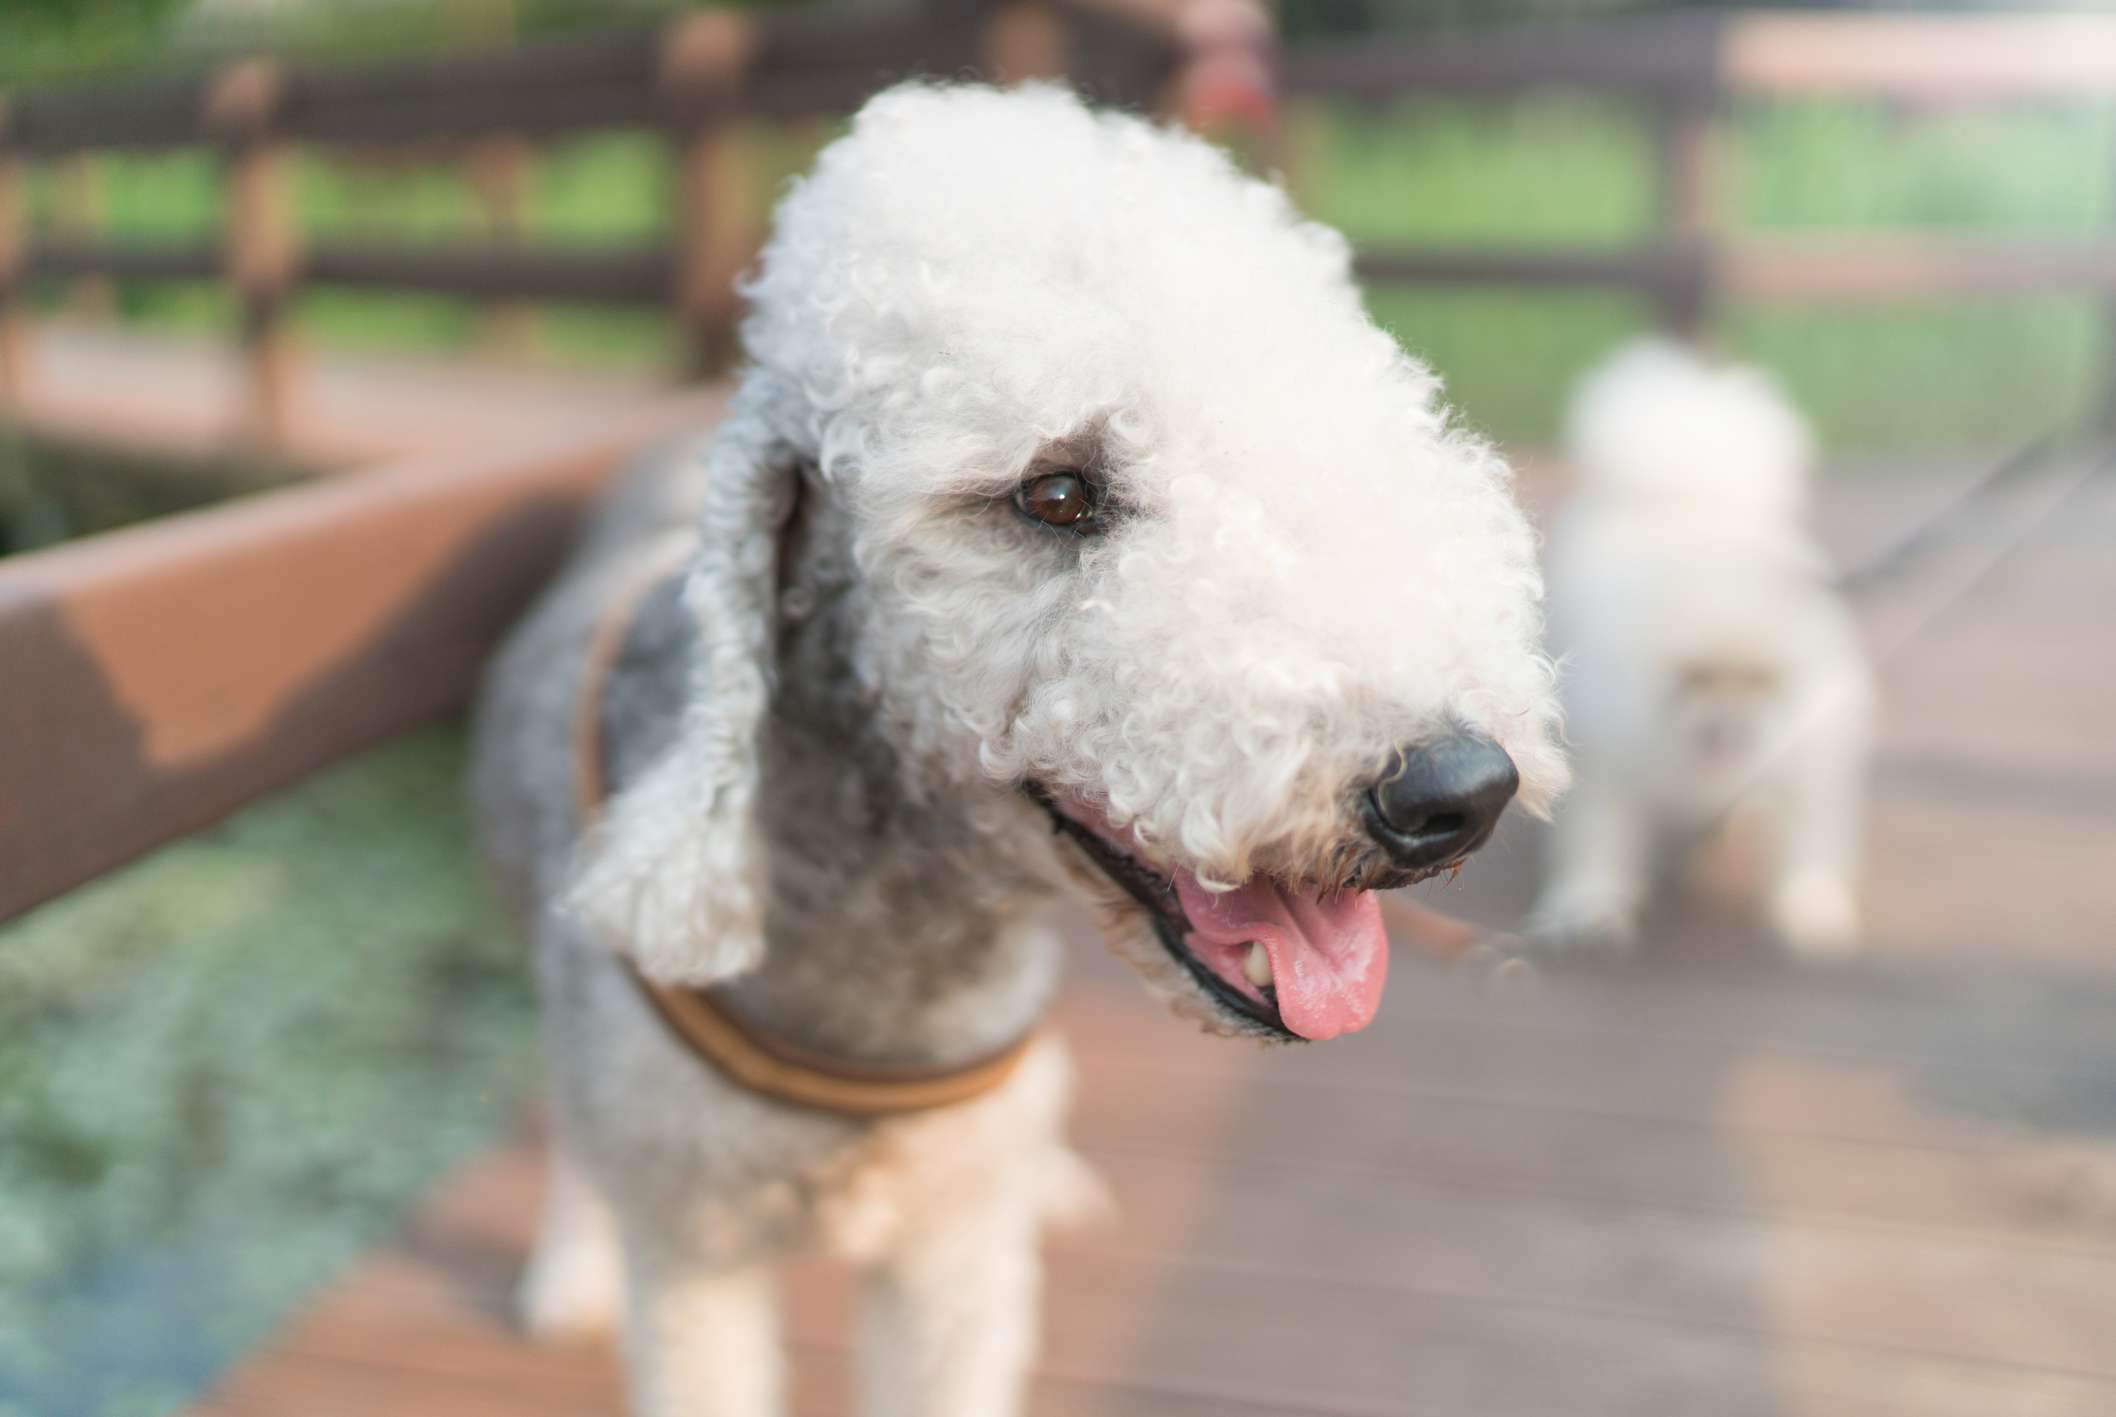 A white dog with a cotton-like coat.